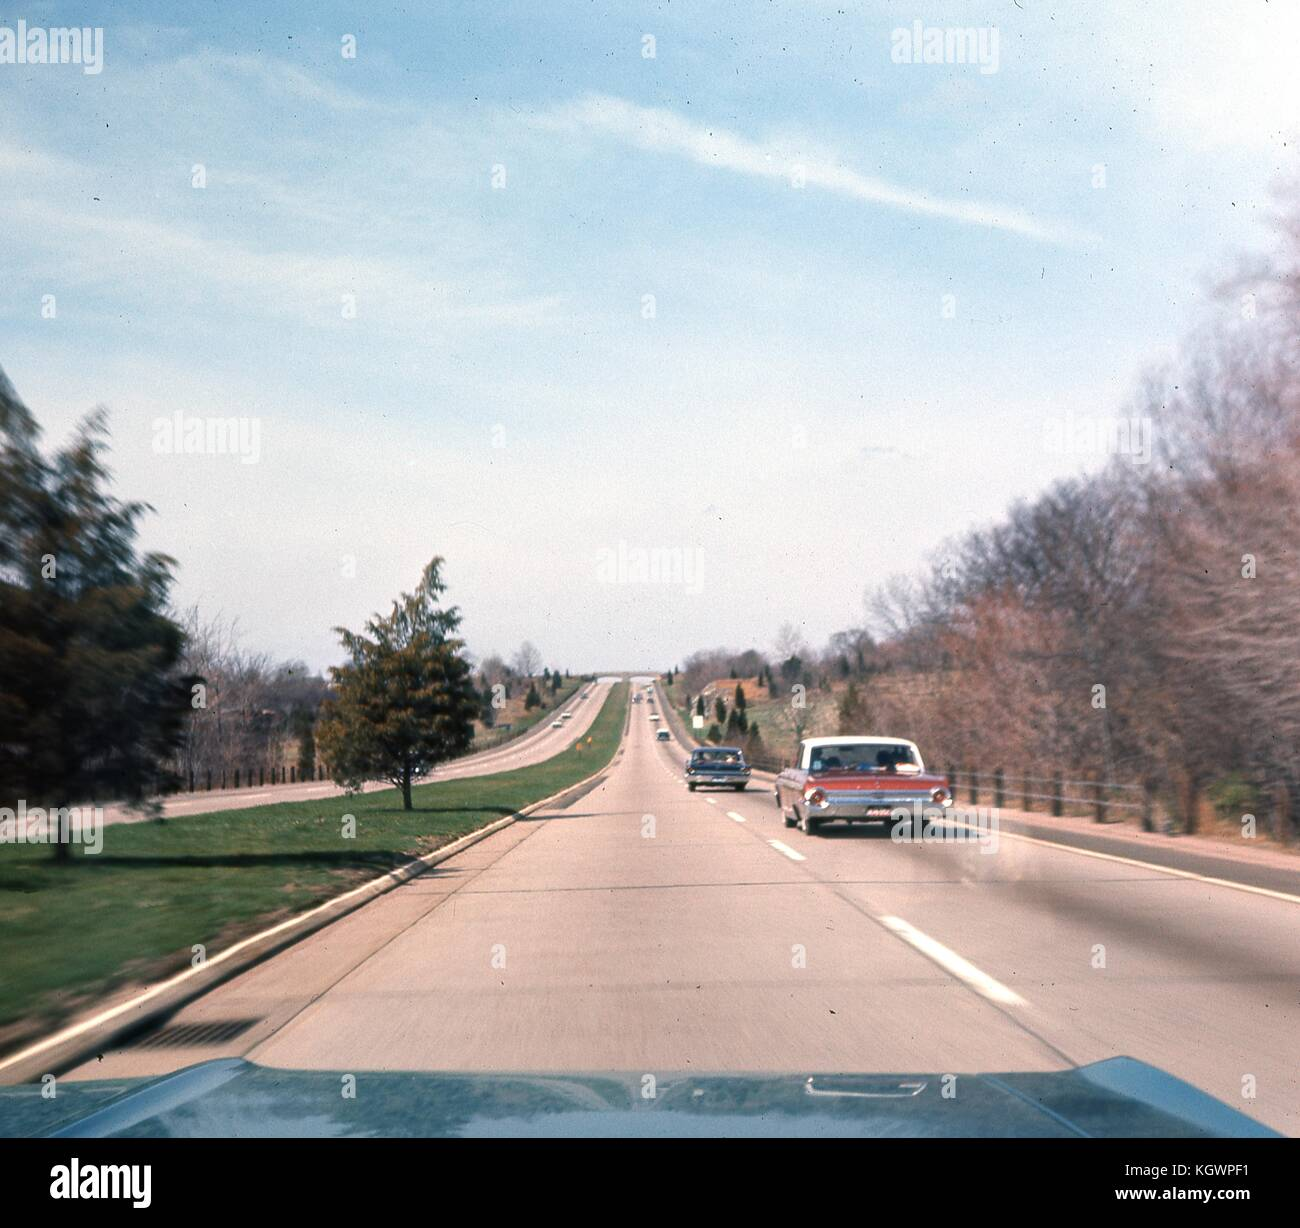 View from the front passenger seat of a car traveling southwest on the Wilbur Cross Parkway outside of New Haven, - Stock Image